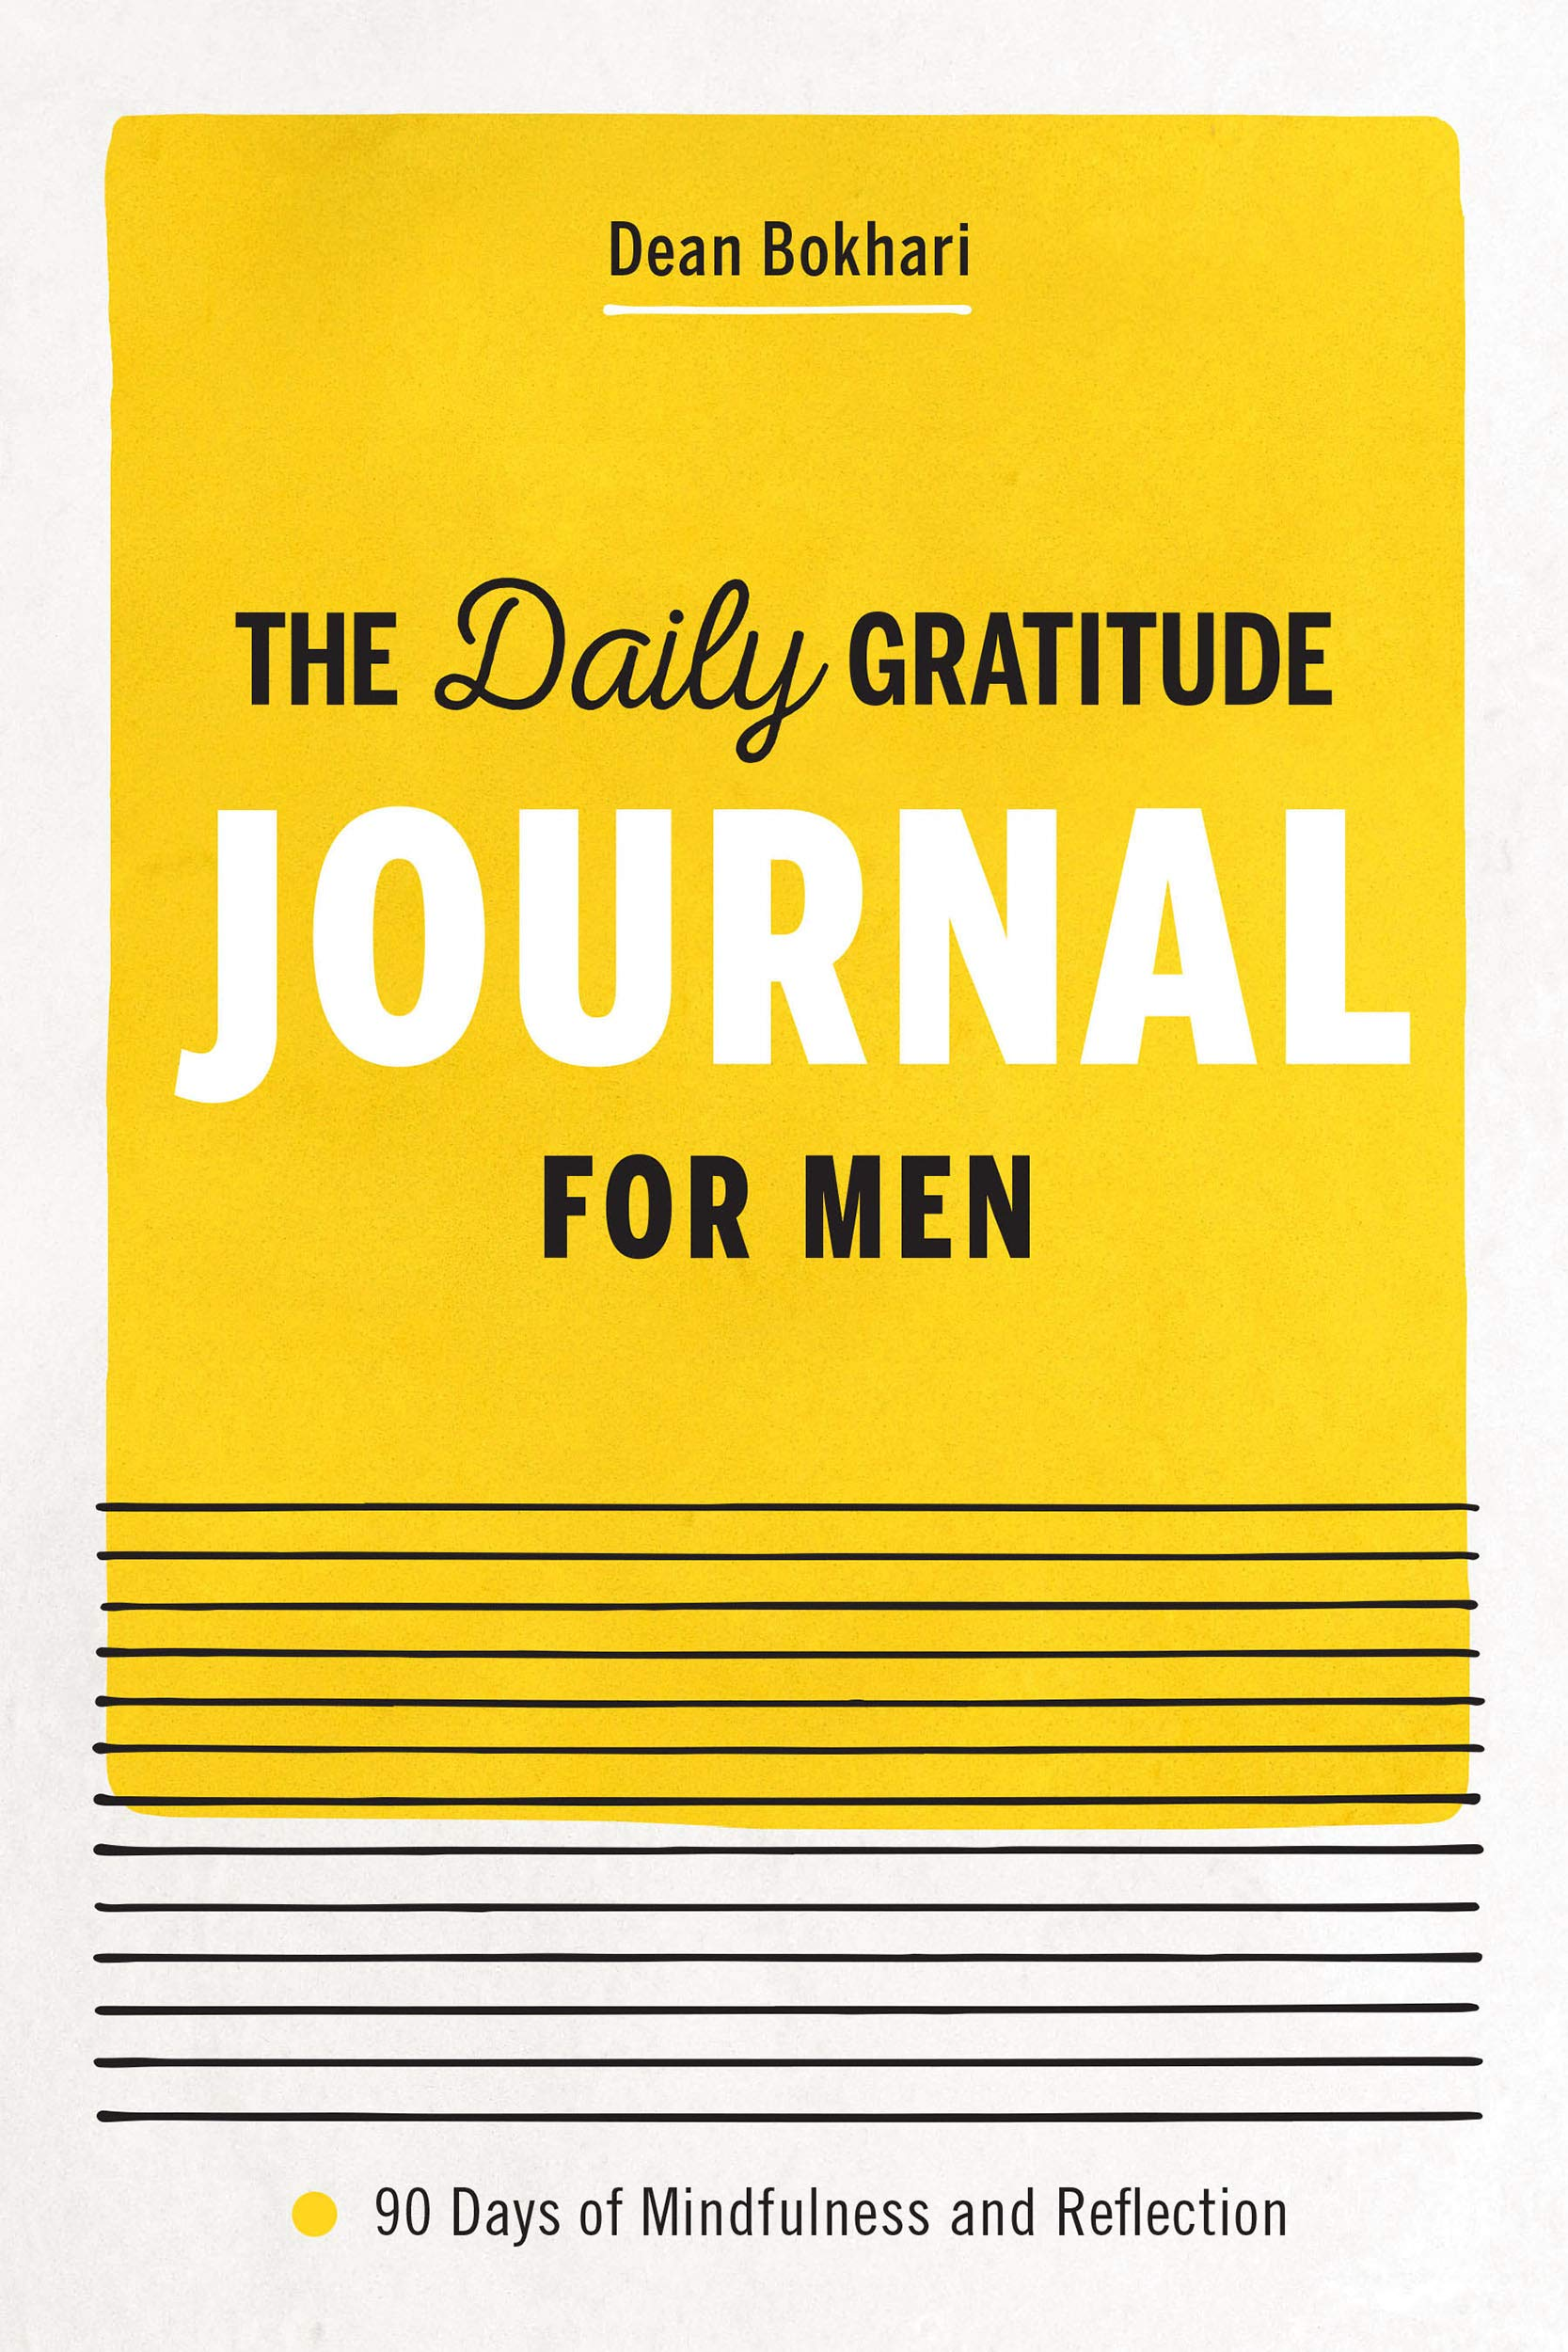 The_Daily_Gratitude_Journal_for_Men_by_Dean_Bokhari